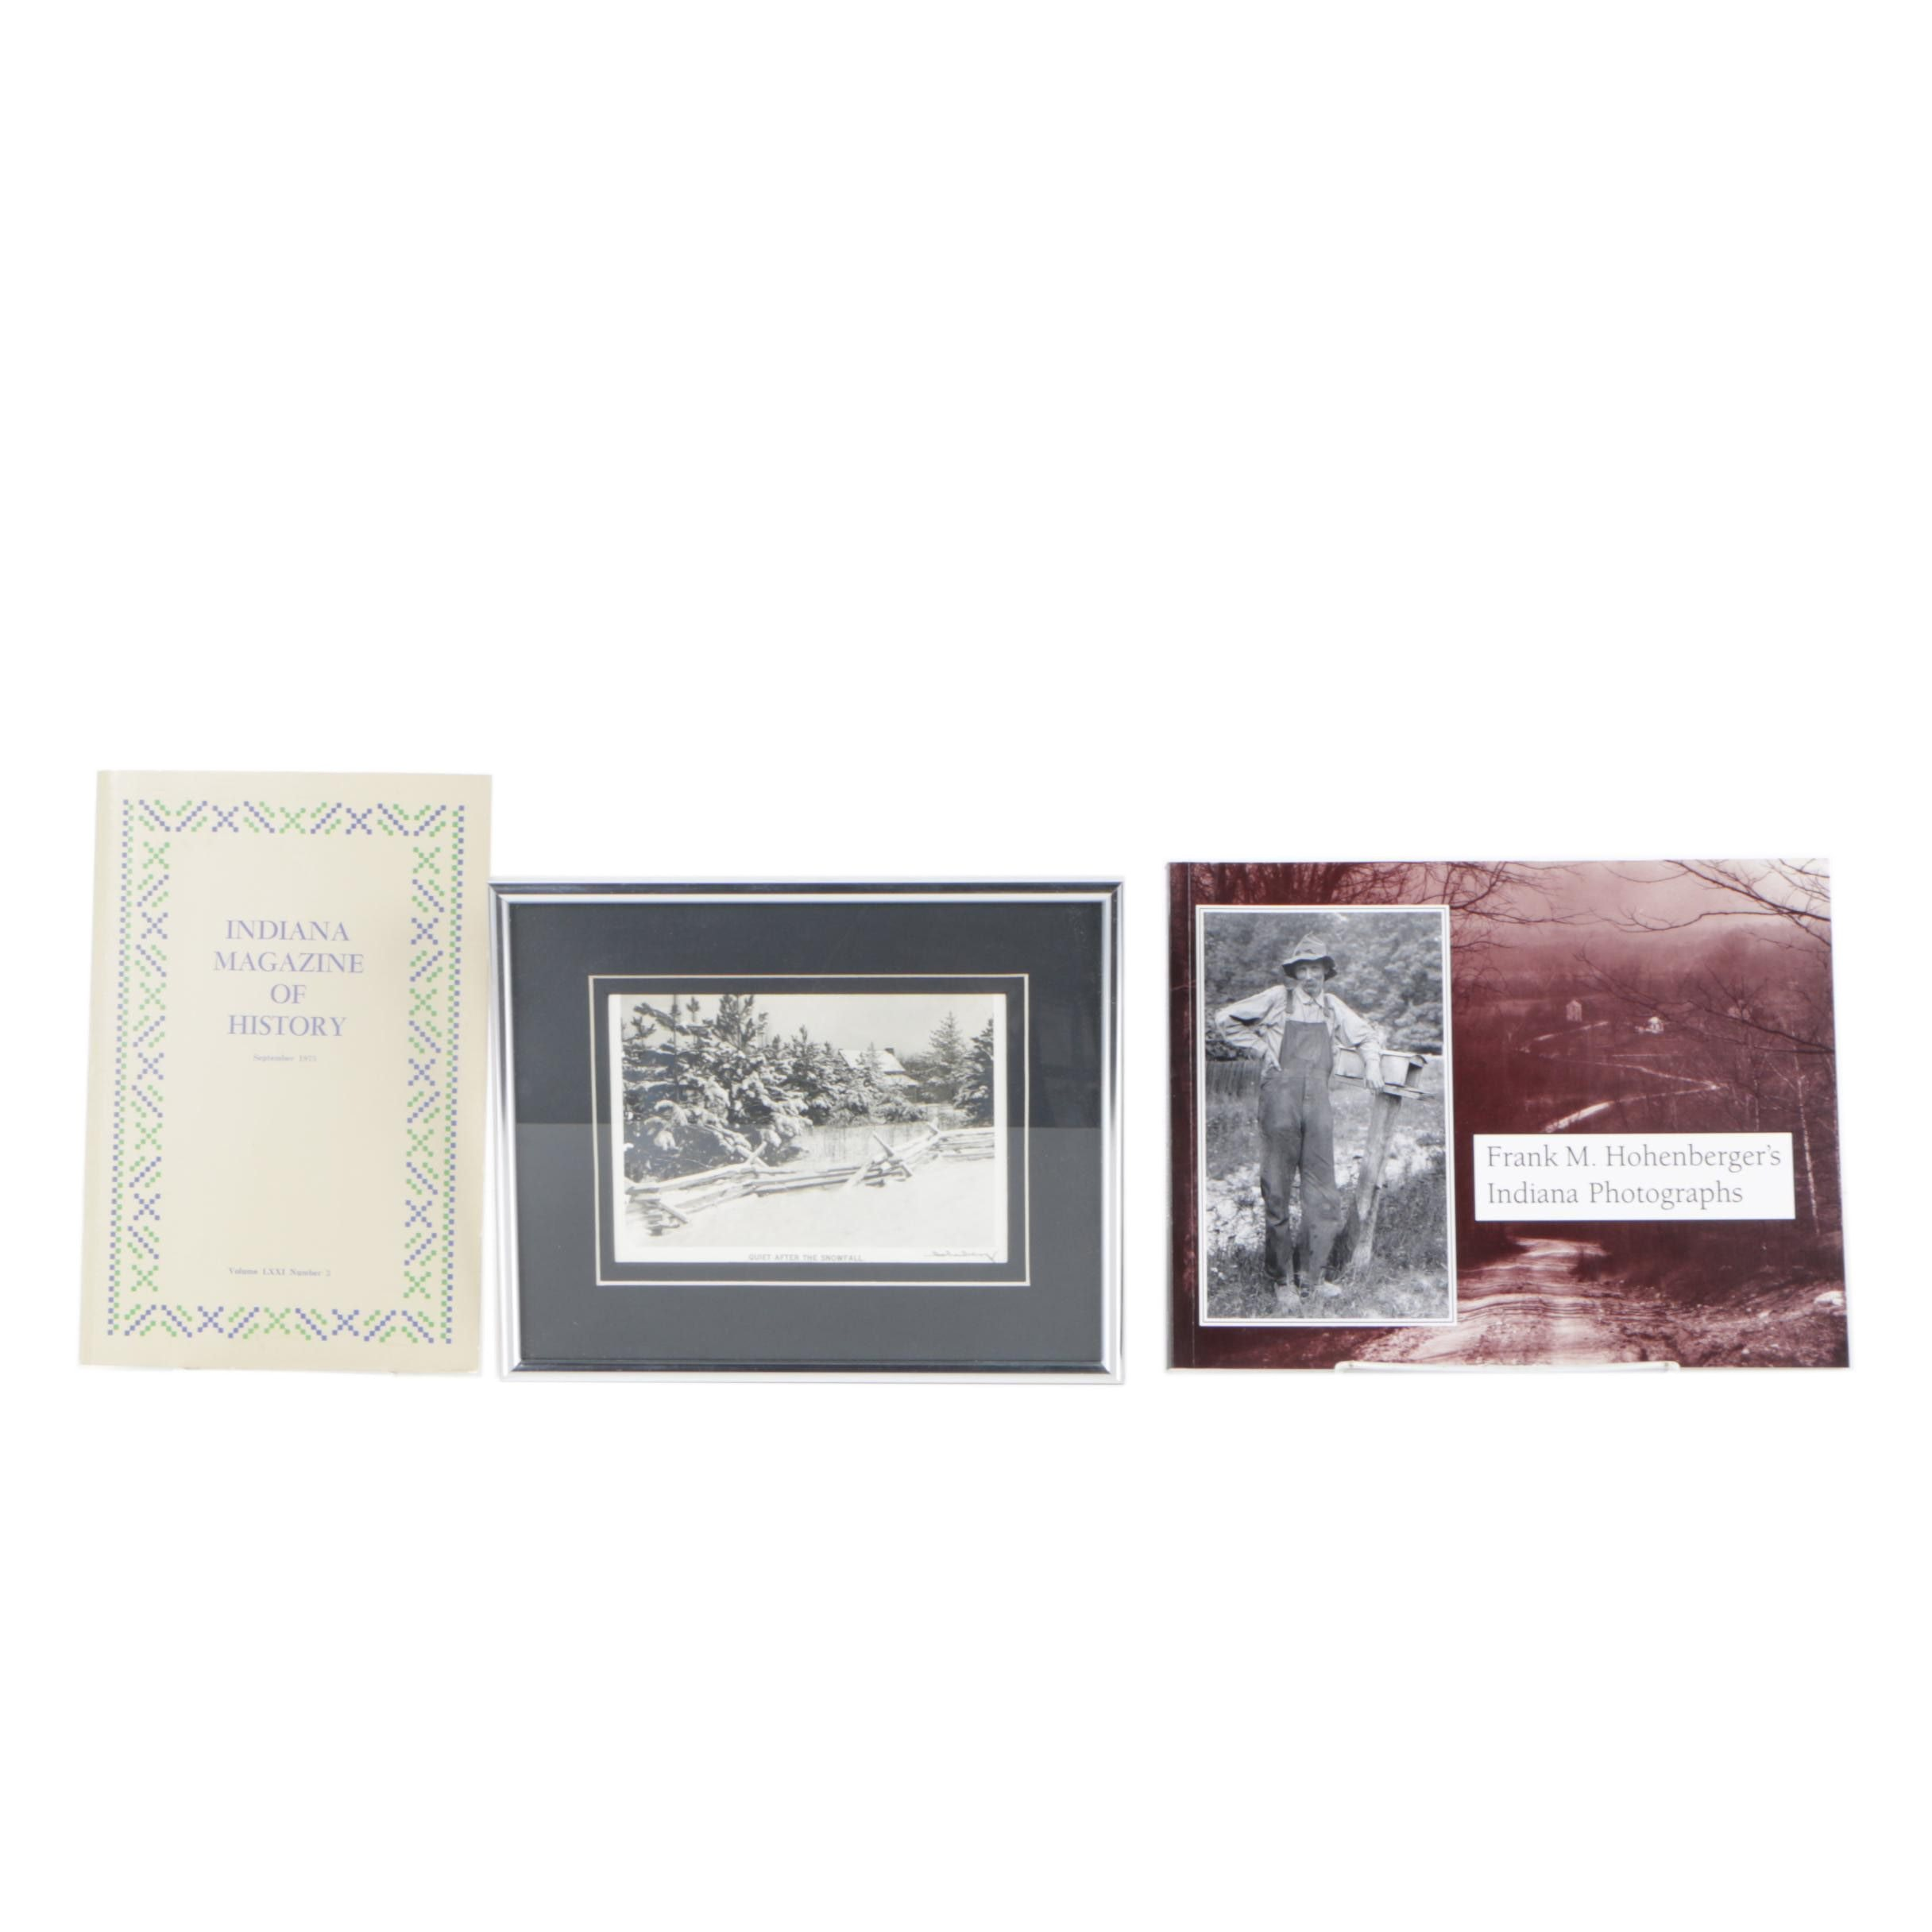 Frank Hohenberger Silver-Gelatin Photograph and Books